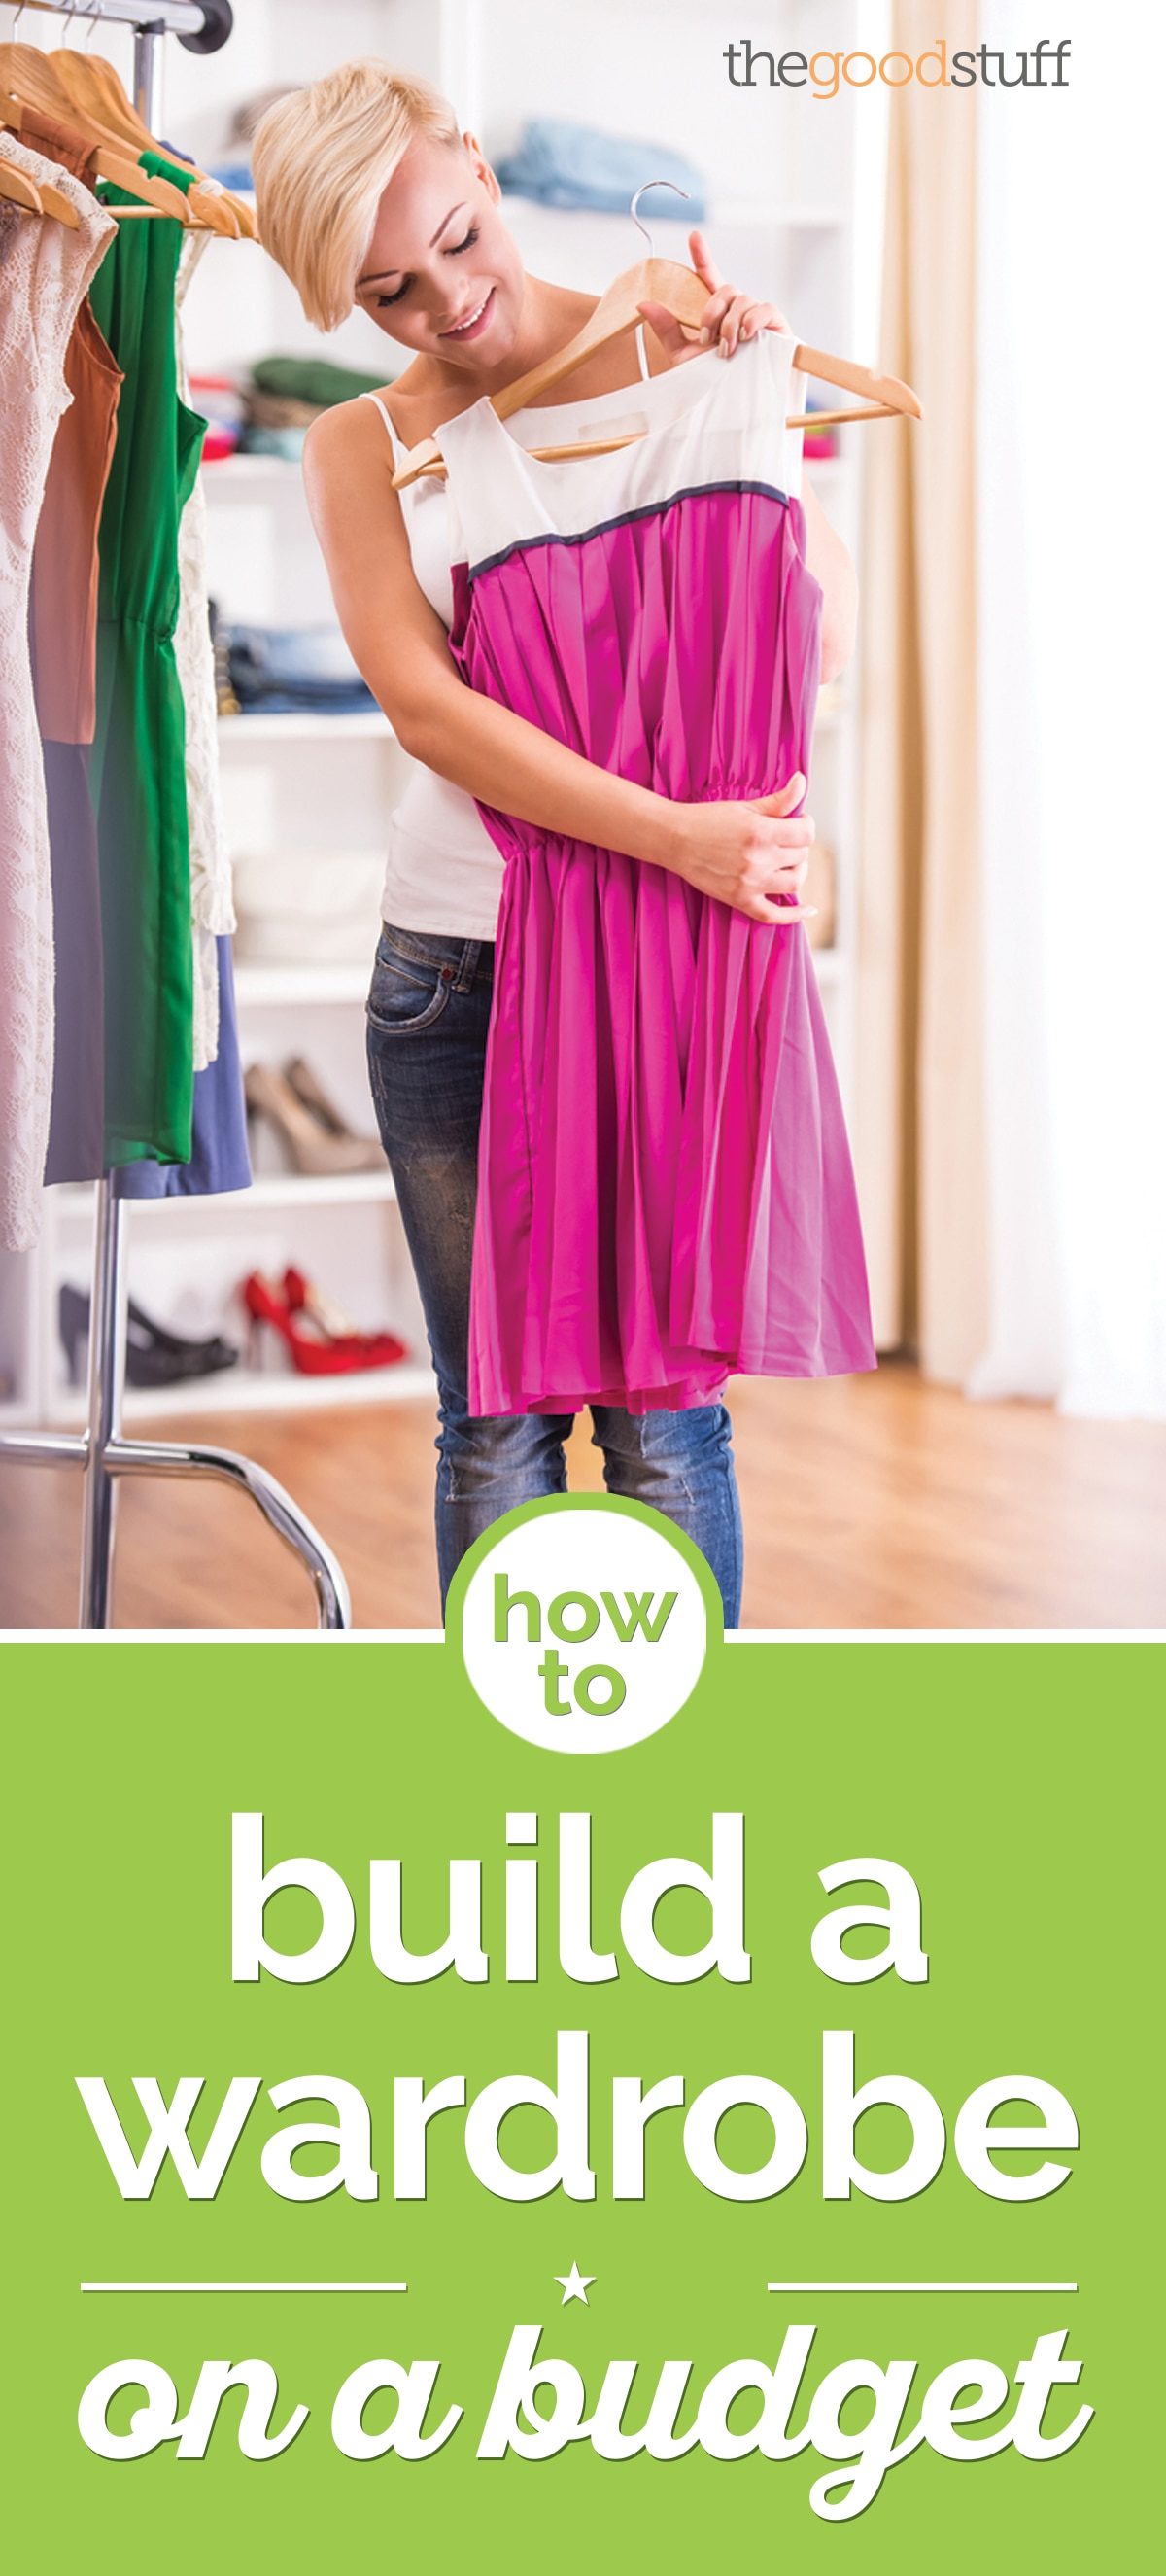 How to Build a Wardrobe on a Budget | the good stuff